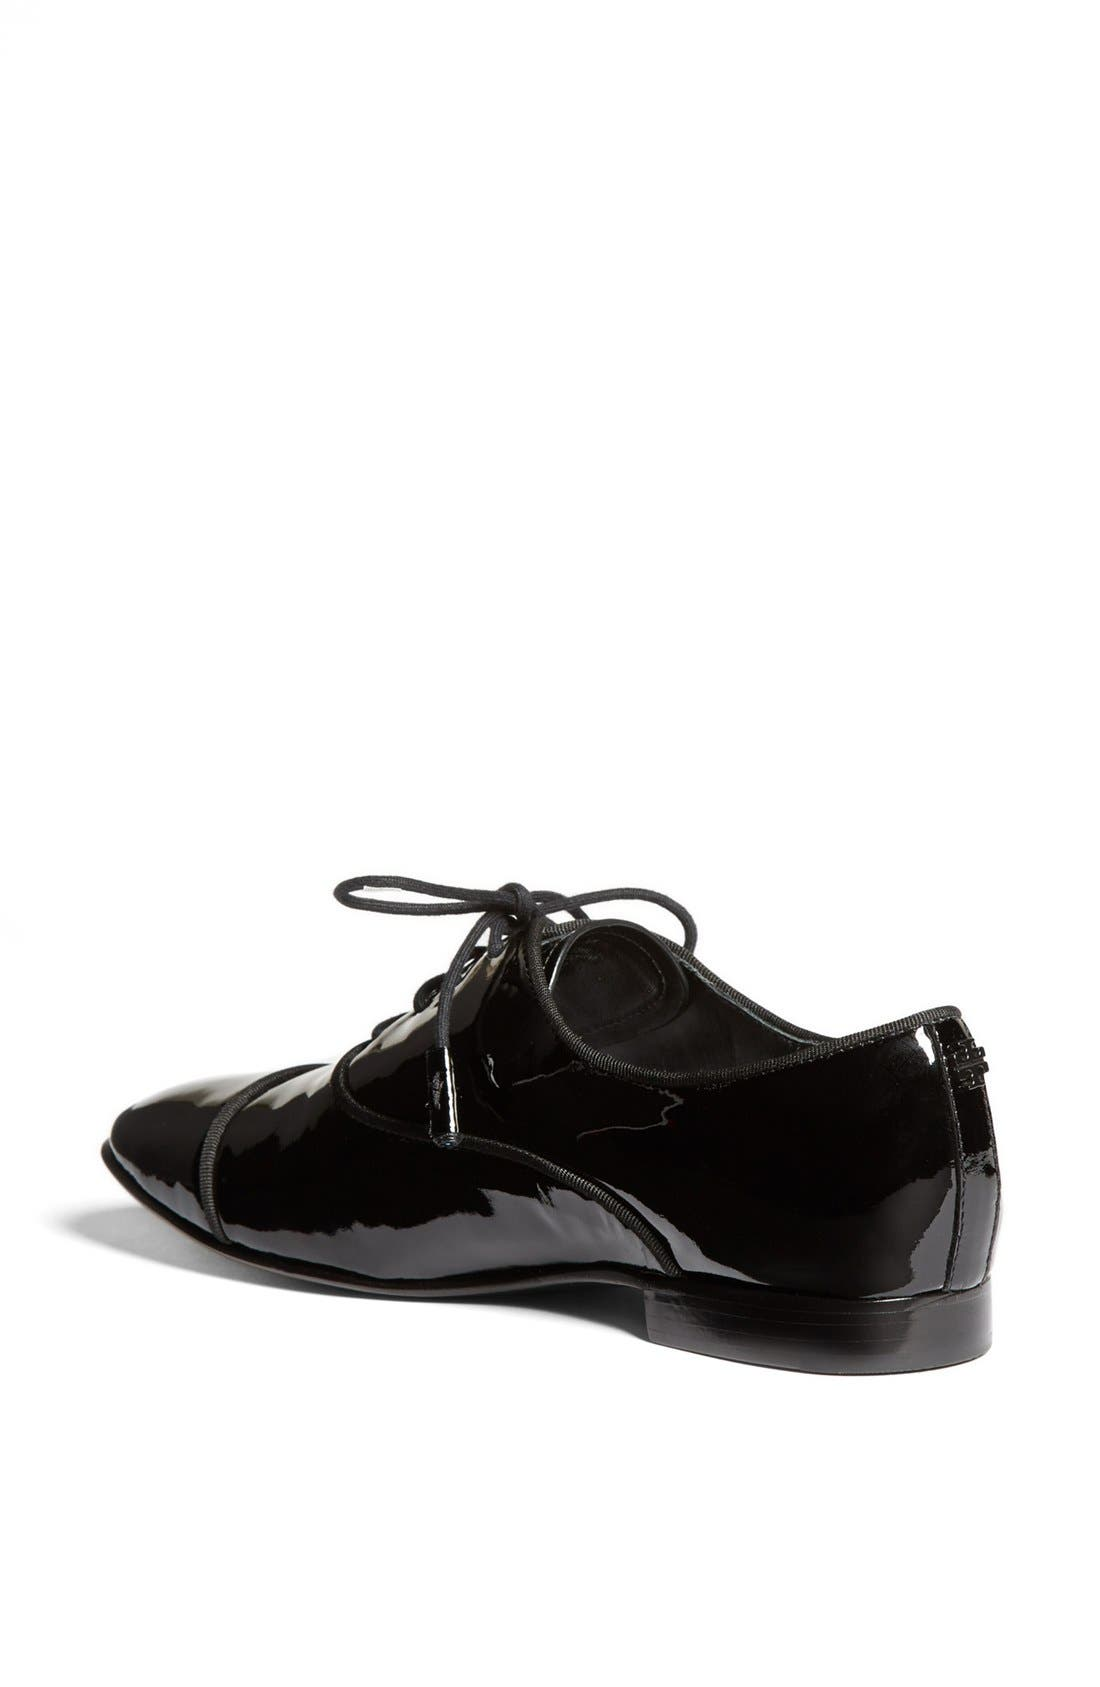 Alternate Image 2  - Tory Burch 'Dylan' Oxford Flat (Online Only)